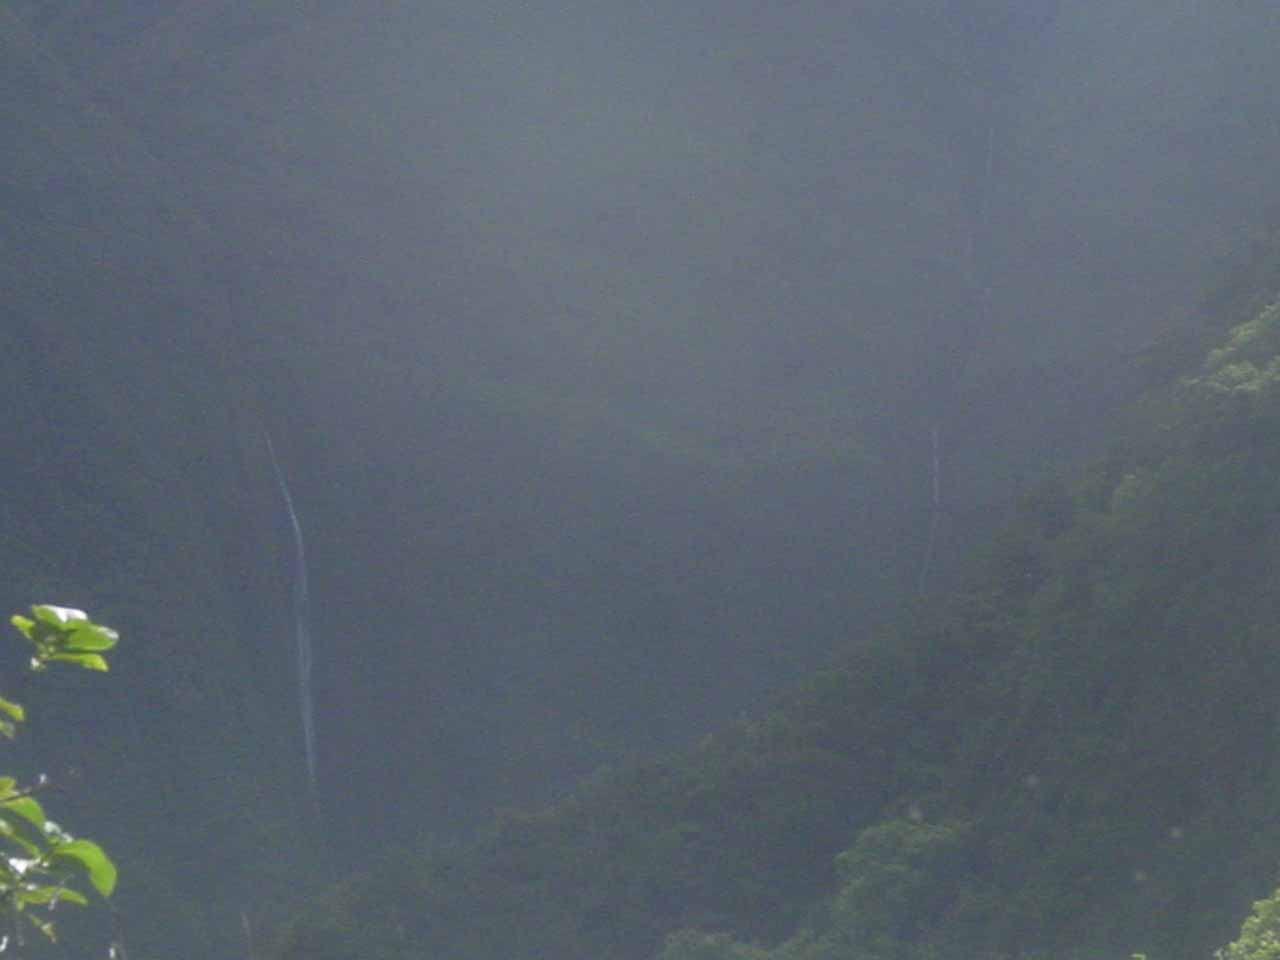 When we looked way in the distance as we were near Ali'ele Falls, we saw Mana-nole Falls deeper into Waihe'e Valley